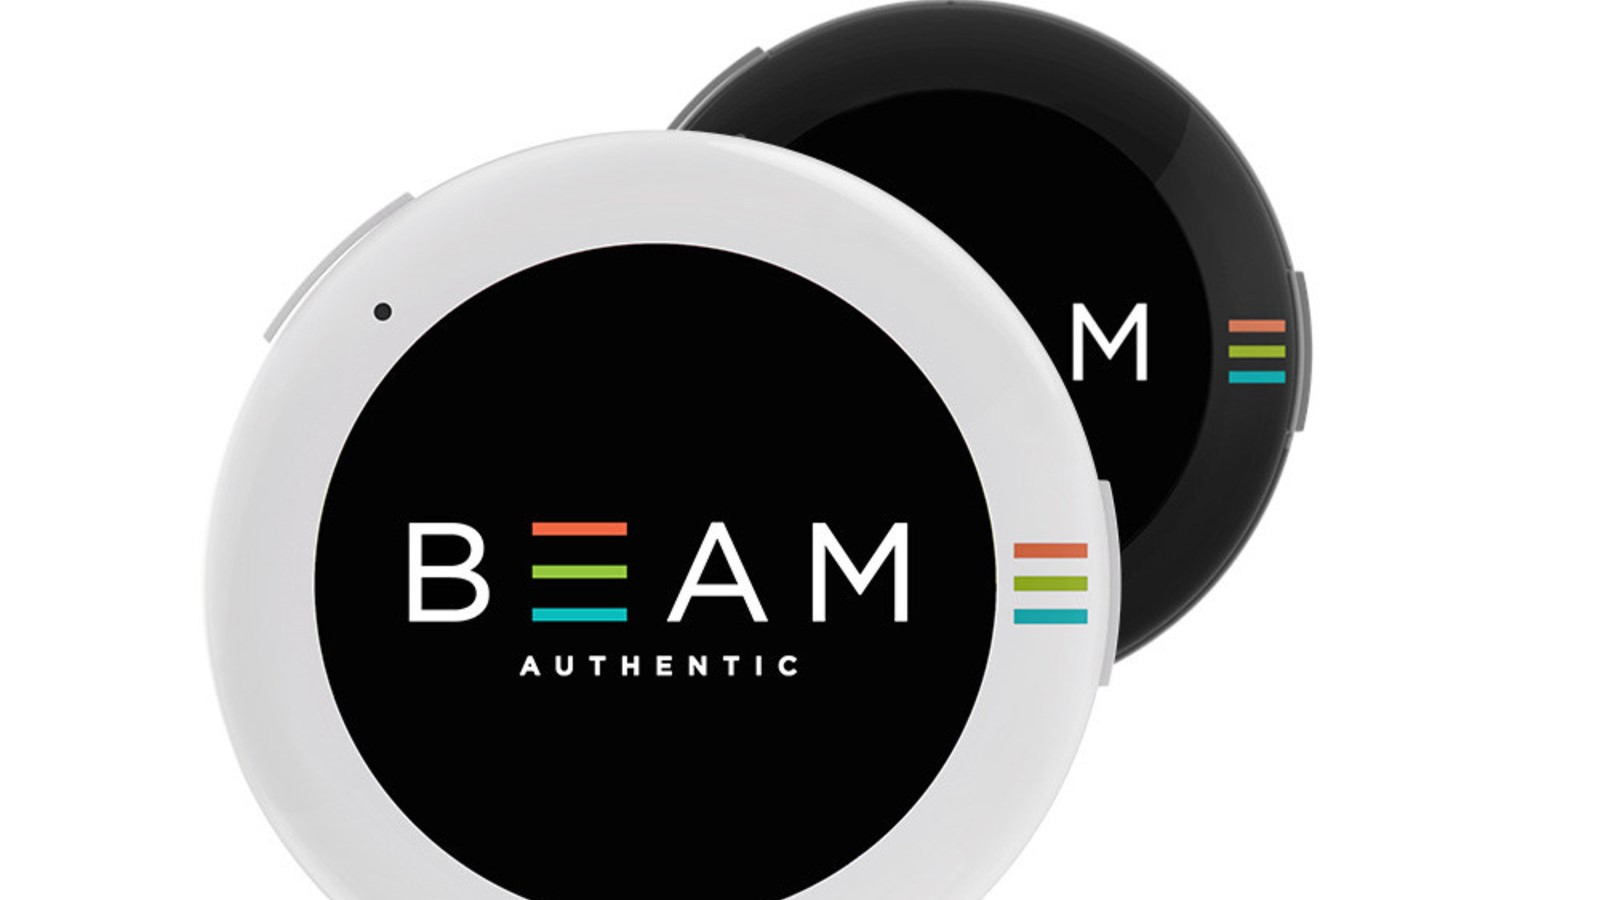 BEAM is a $99 smart wearable button with an AMOLED screen